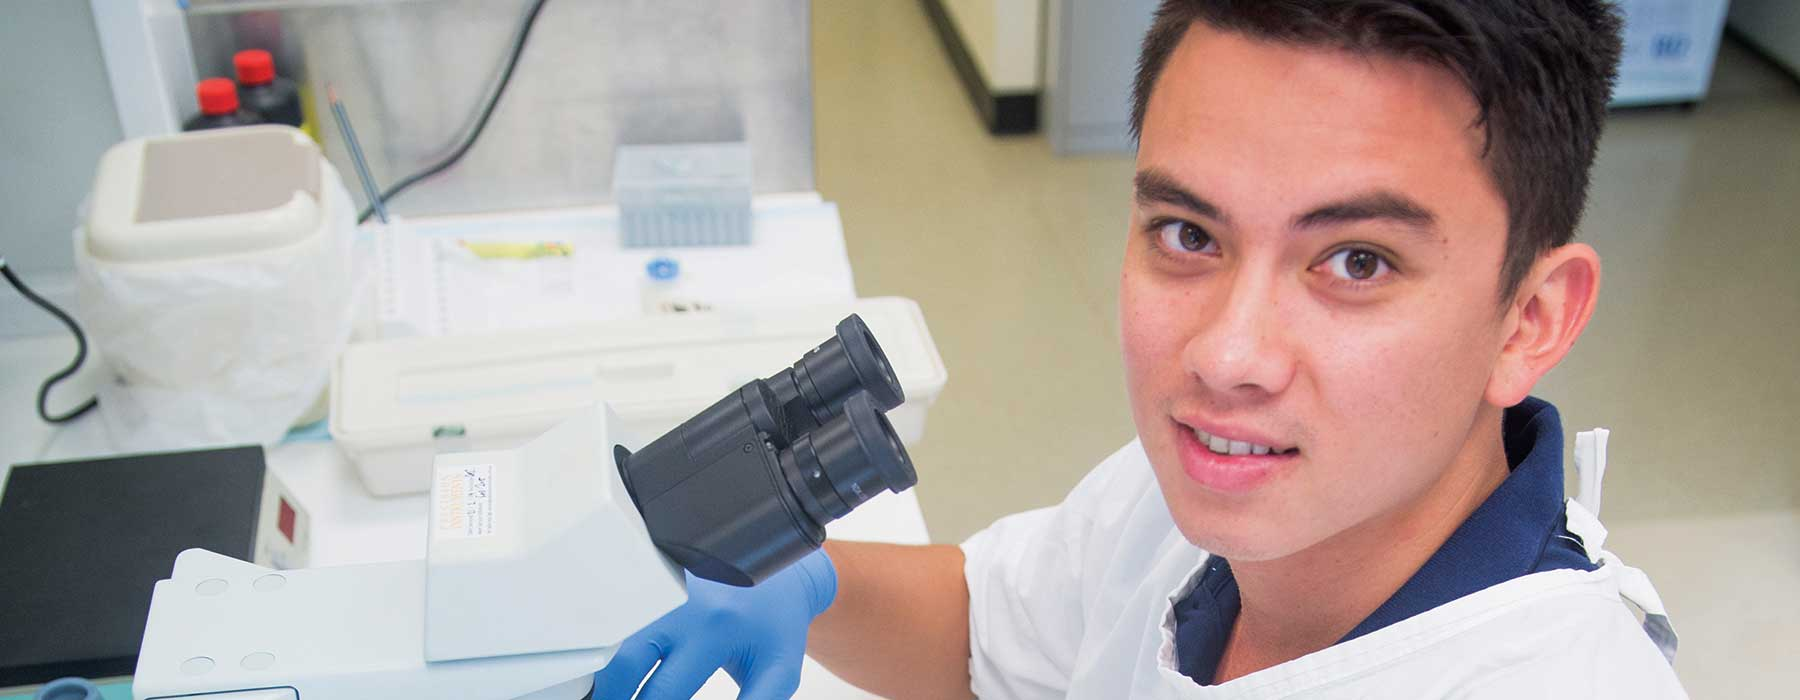 Student in lab working with microscope